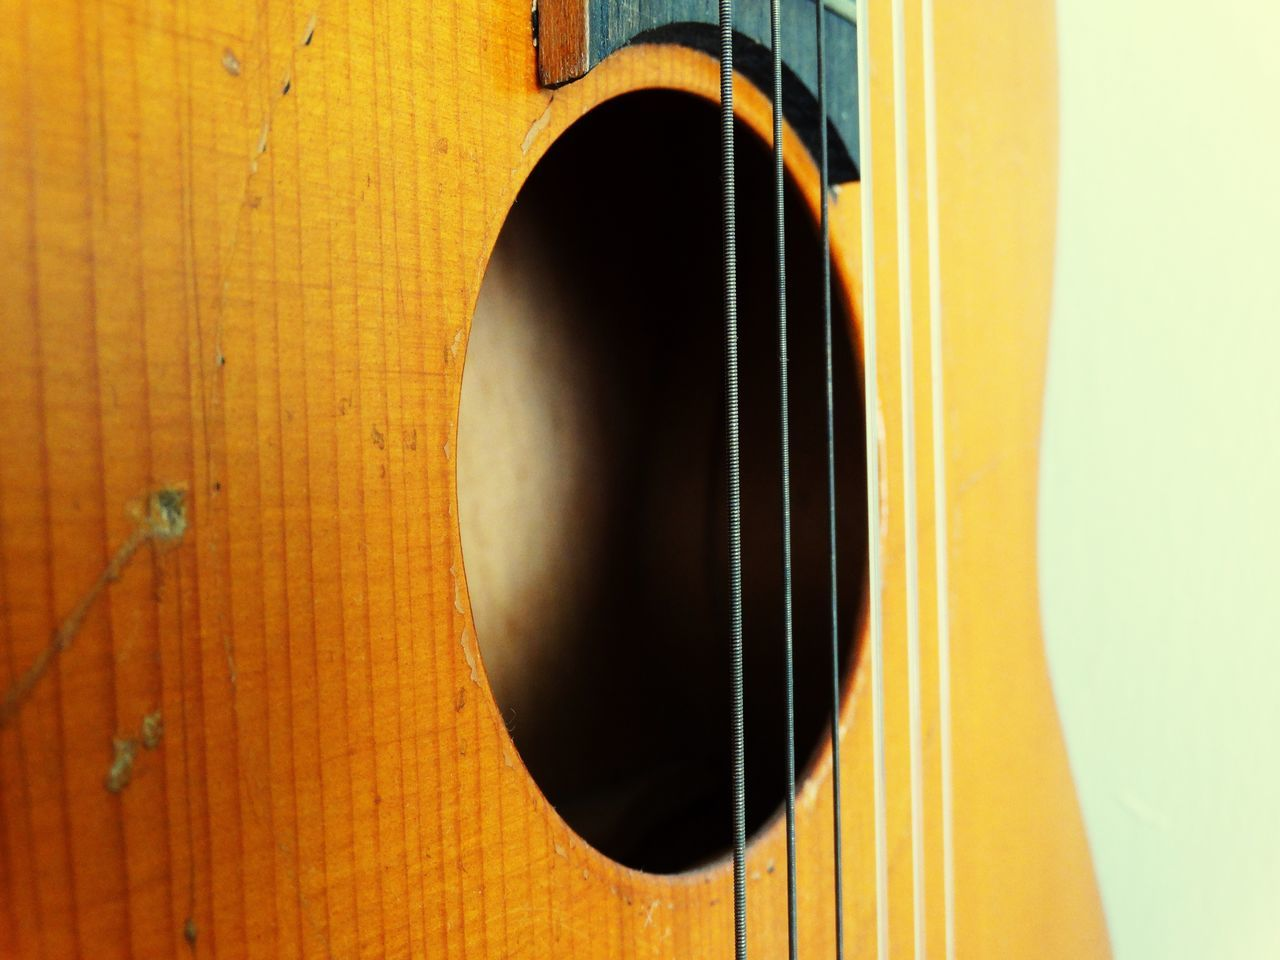 Guitar 🎵 Guitar Rock Classic Strings Acoustic Acoustic Guitar First Eyeem Photo Instruments Guitar Picture Guitar Image Strum Wood Best Guitar Guitar Center Studio Guitar Strings Music Musician Musical Instruments Guitar Close Up Guitar Image Musical Instrument Classic Guitar Guitar Lessons